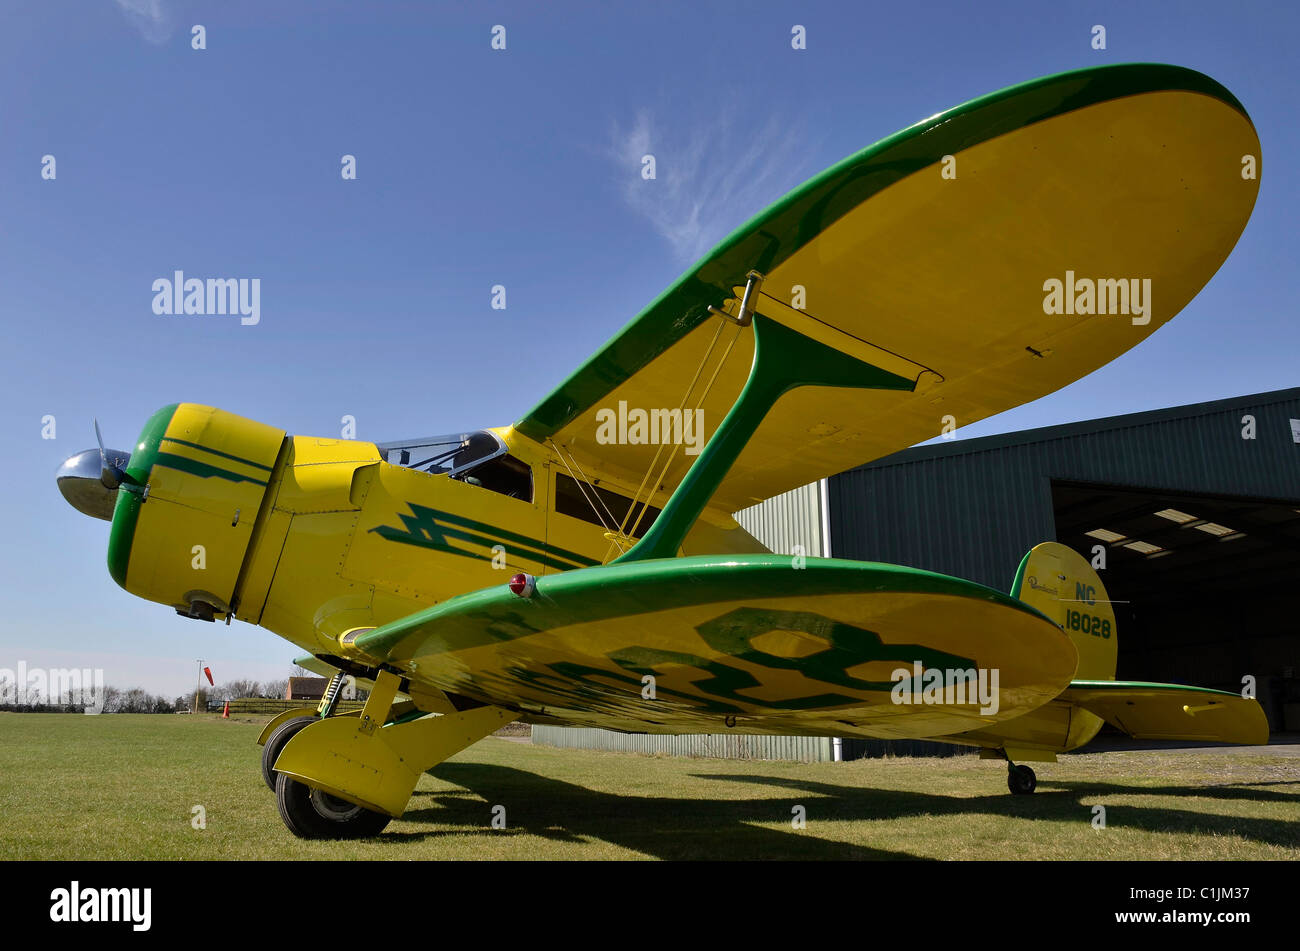 beechcraft staggerwing vintage aircraft - Stock Image